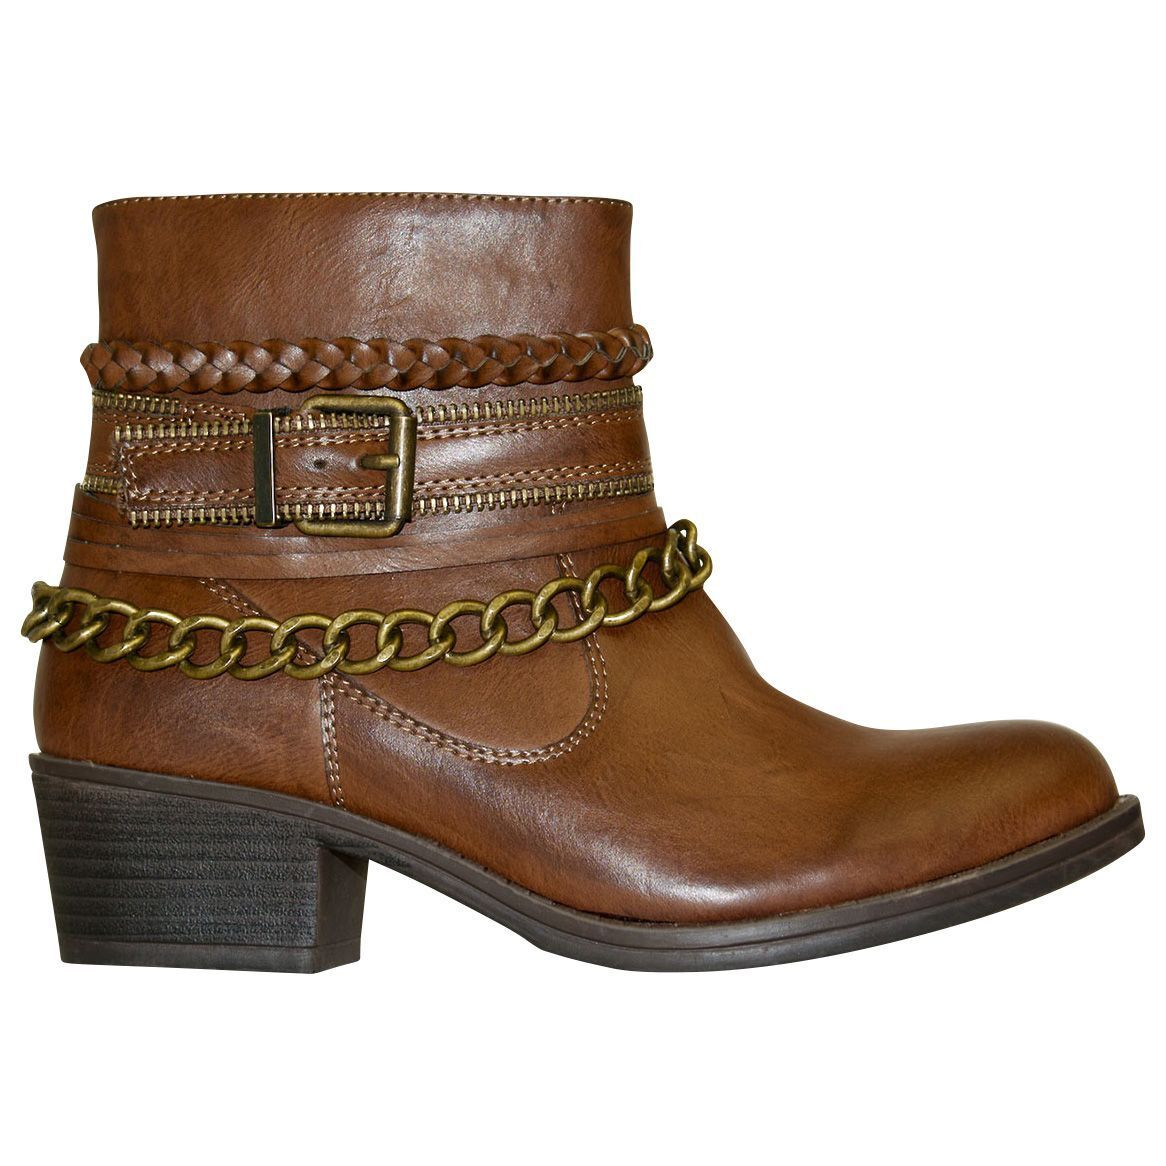 Women's GC Shoes Ranger Bootie Brown Size 10 #NJCG5-431